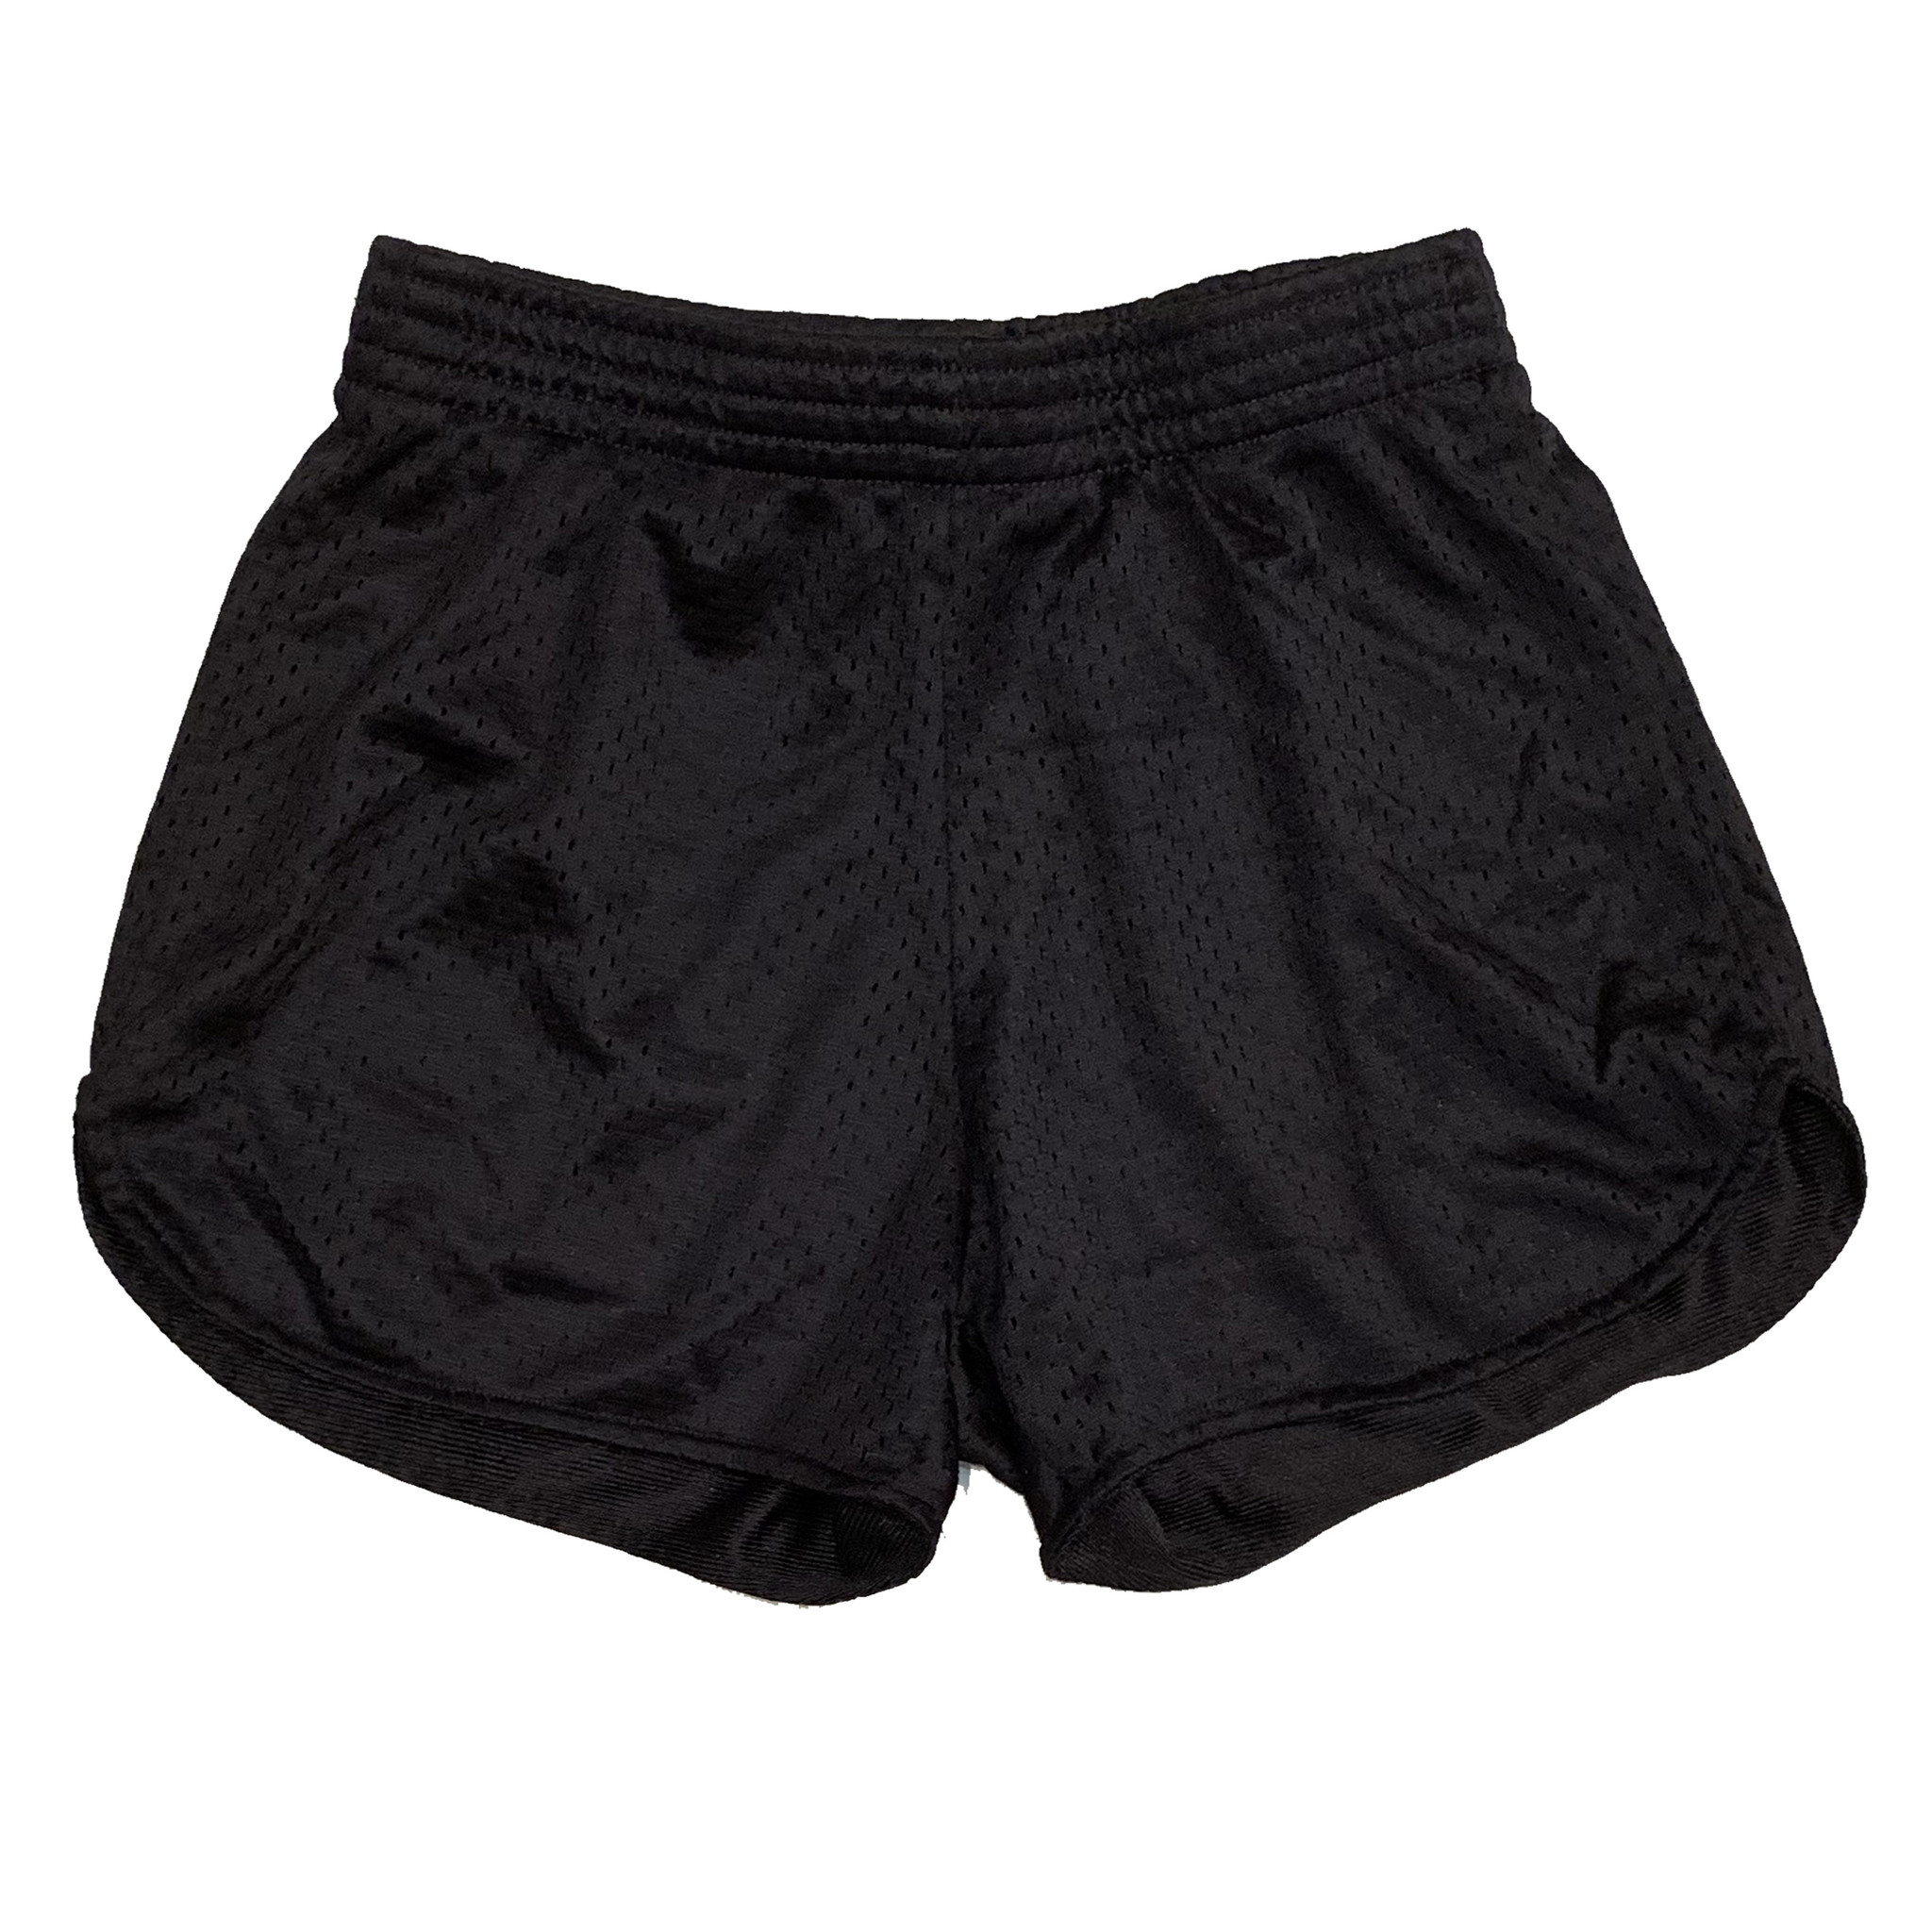 Firehouse Black Mesh Shorts